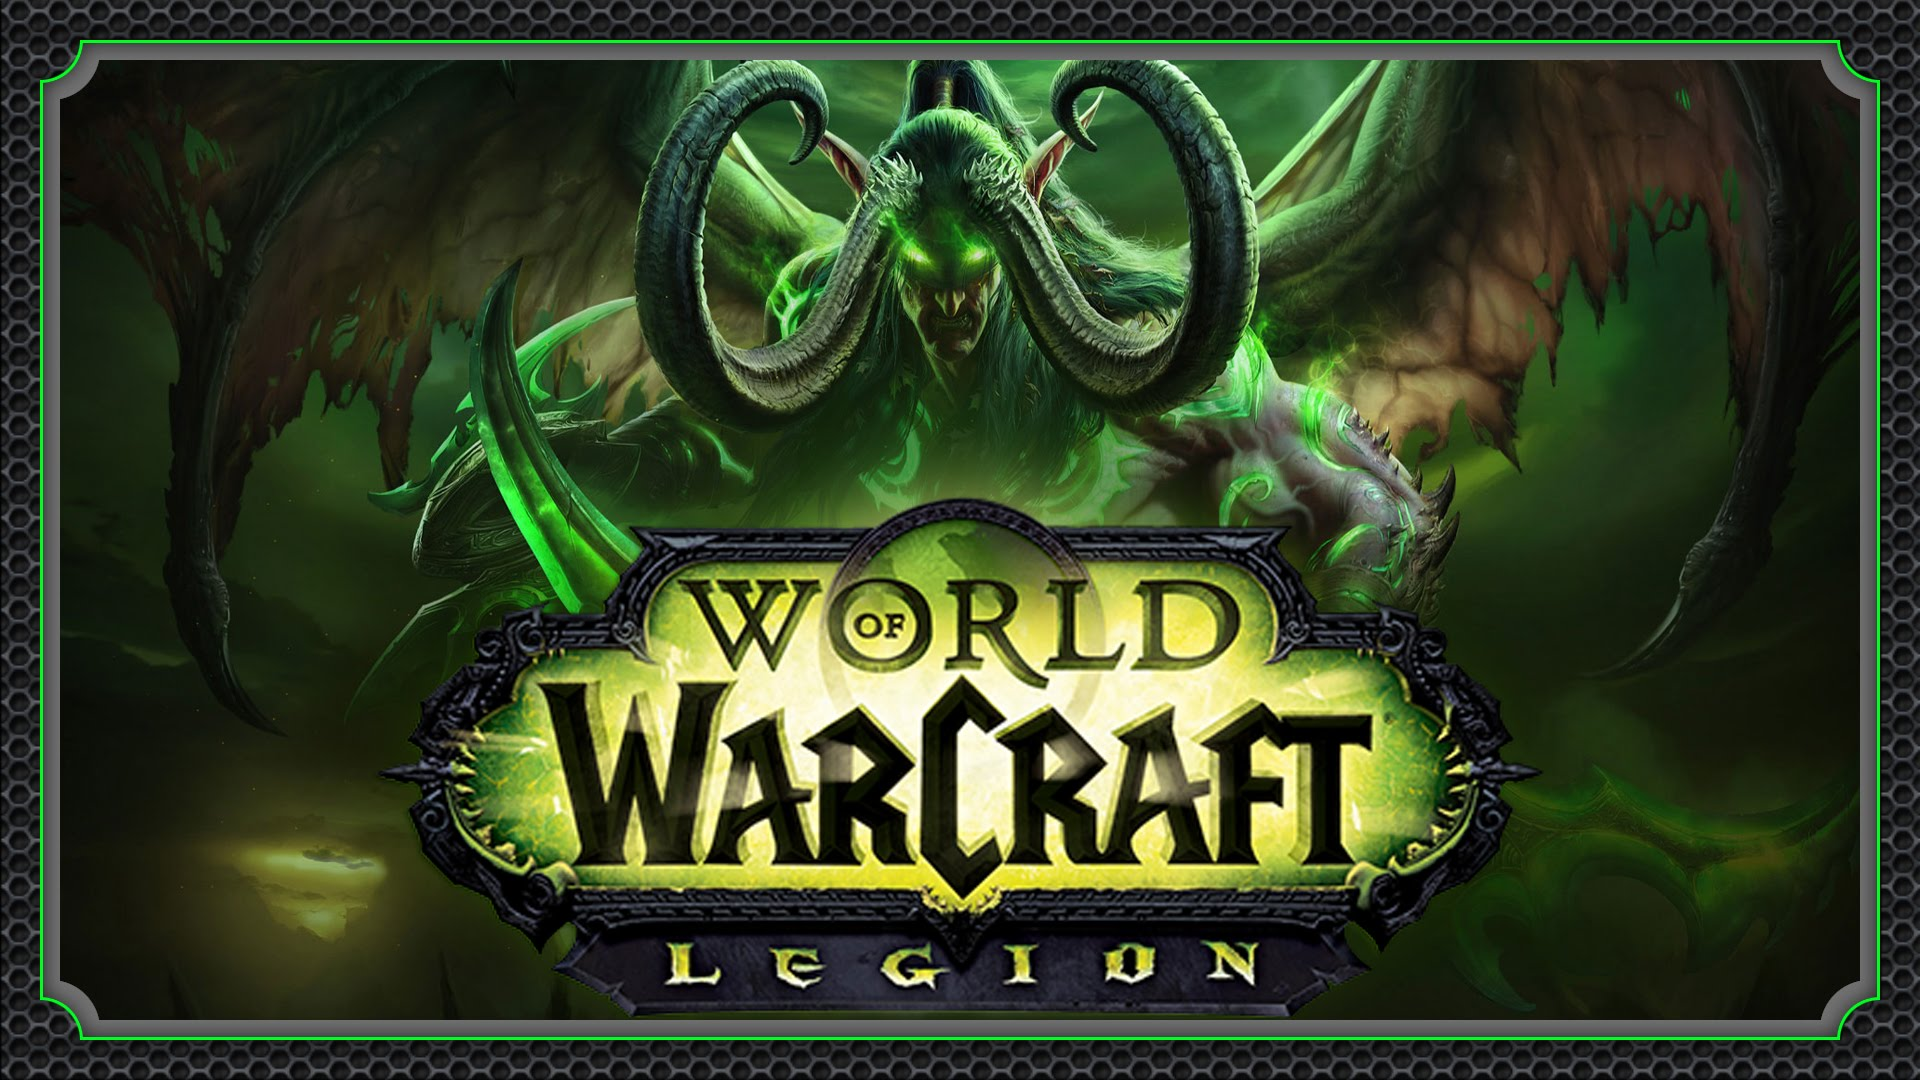 1920x1080px Wow Legion Wallpaper 1920x1080 Wallpapersafari